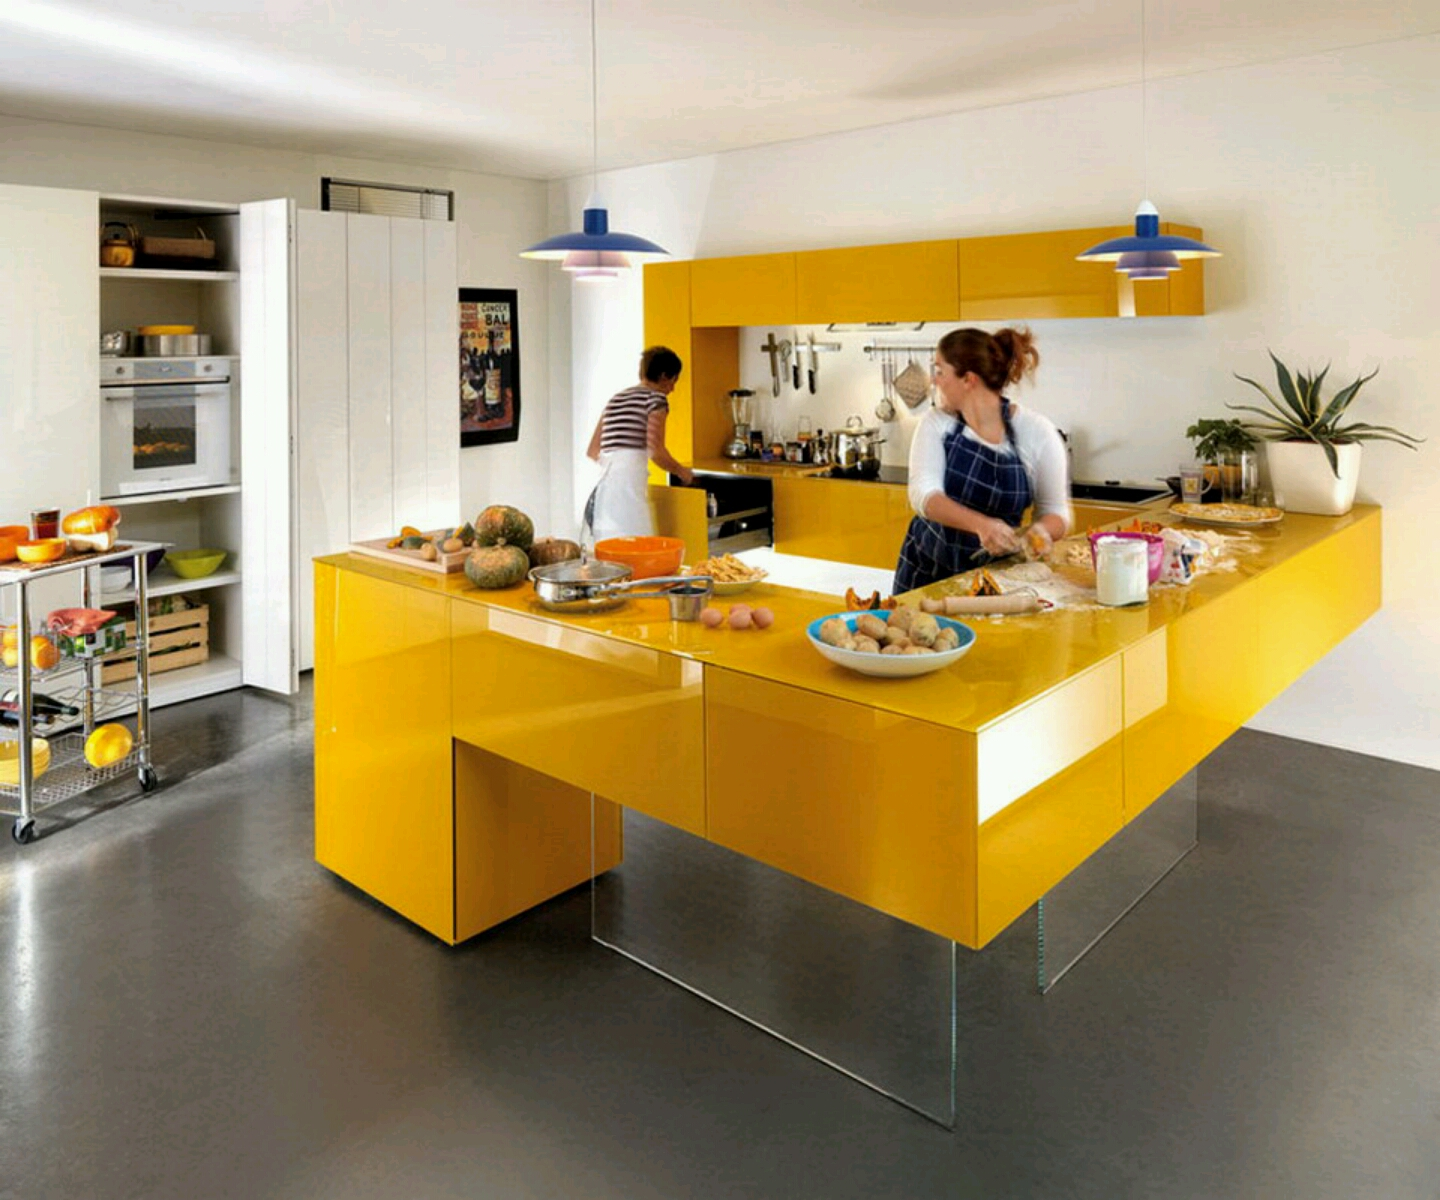 Modern kitchen cabinets designs ideas furniture gallery for Kitchen design ideas images